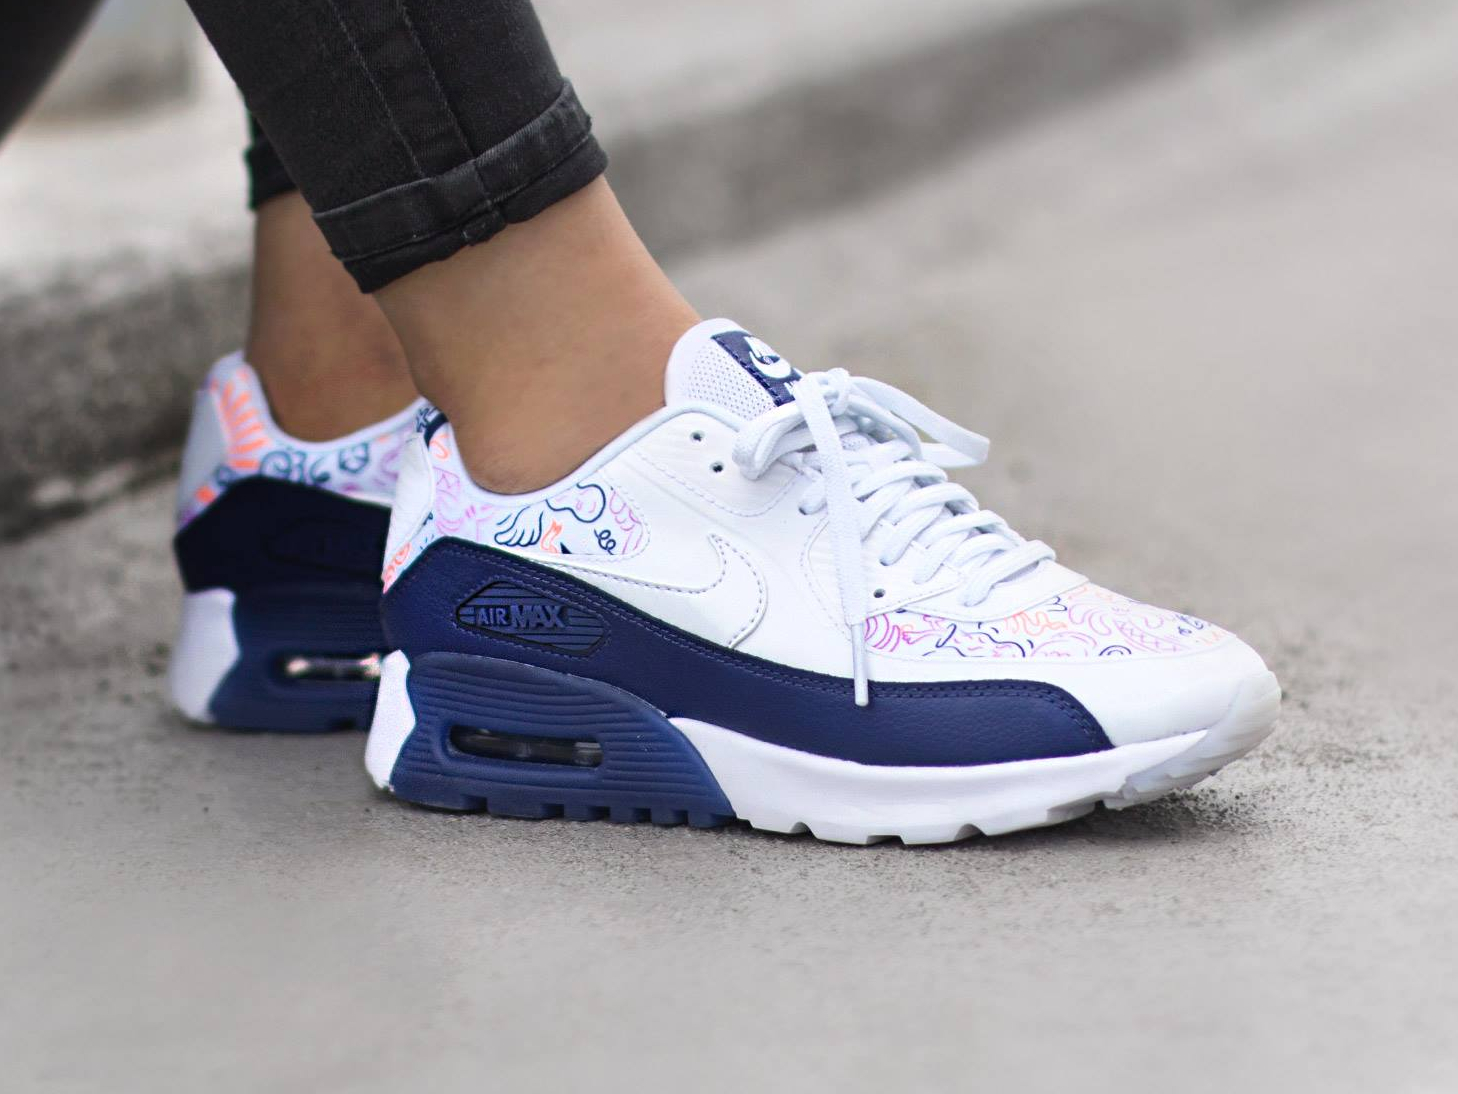 De Nike Le Max Femme La Officiel Air Magasin Marque 90 Phare BwBU8qrn